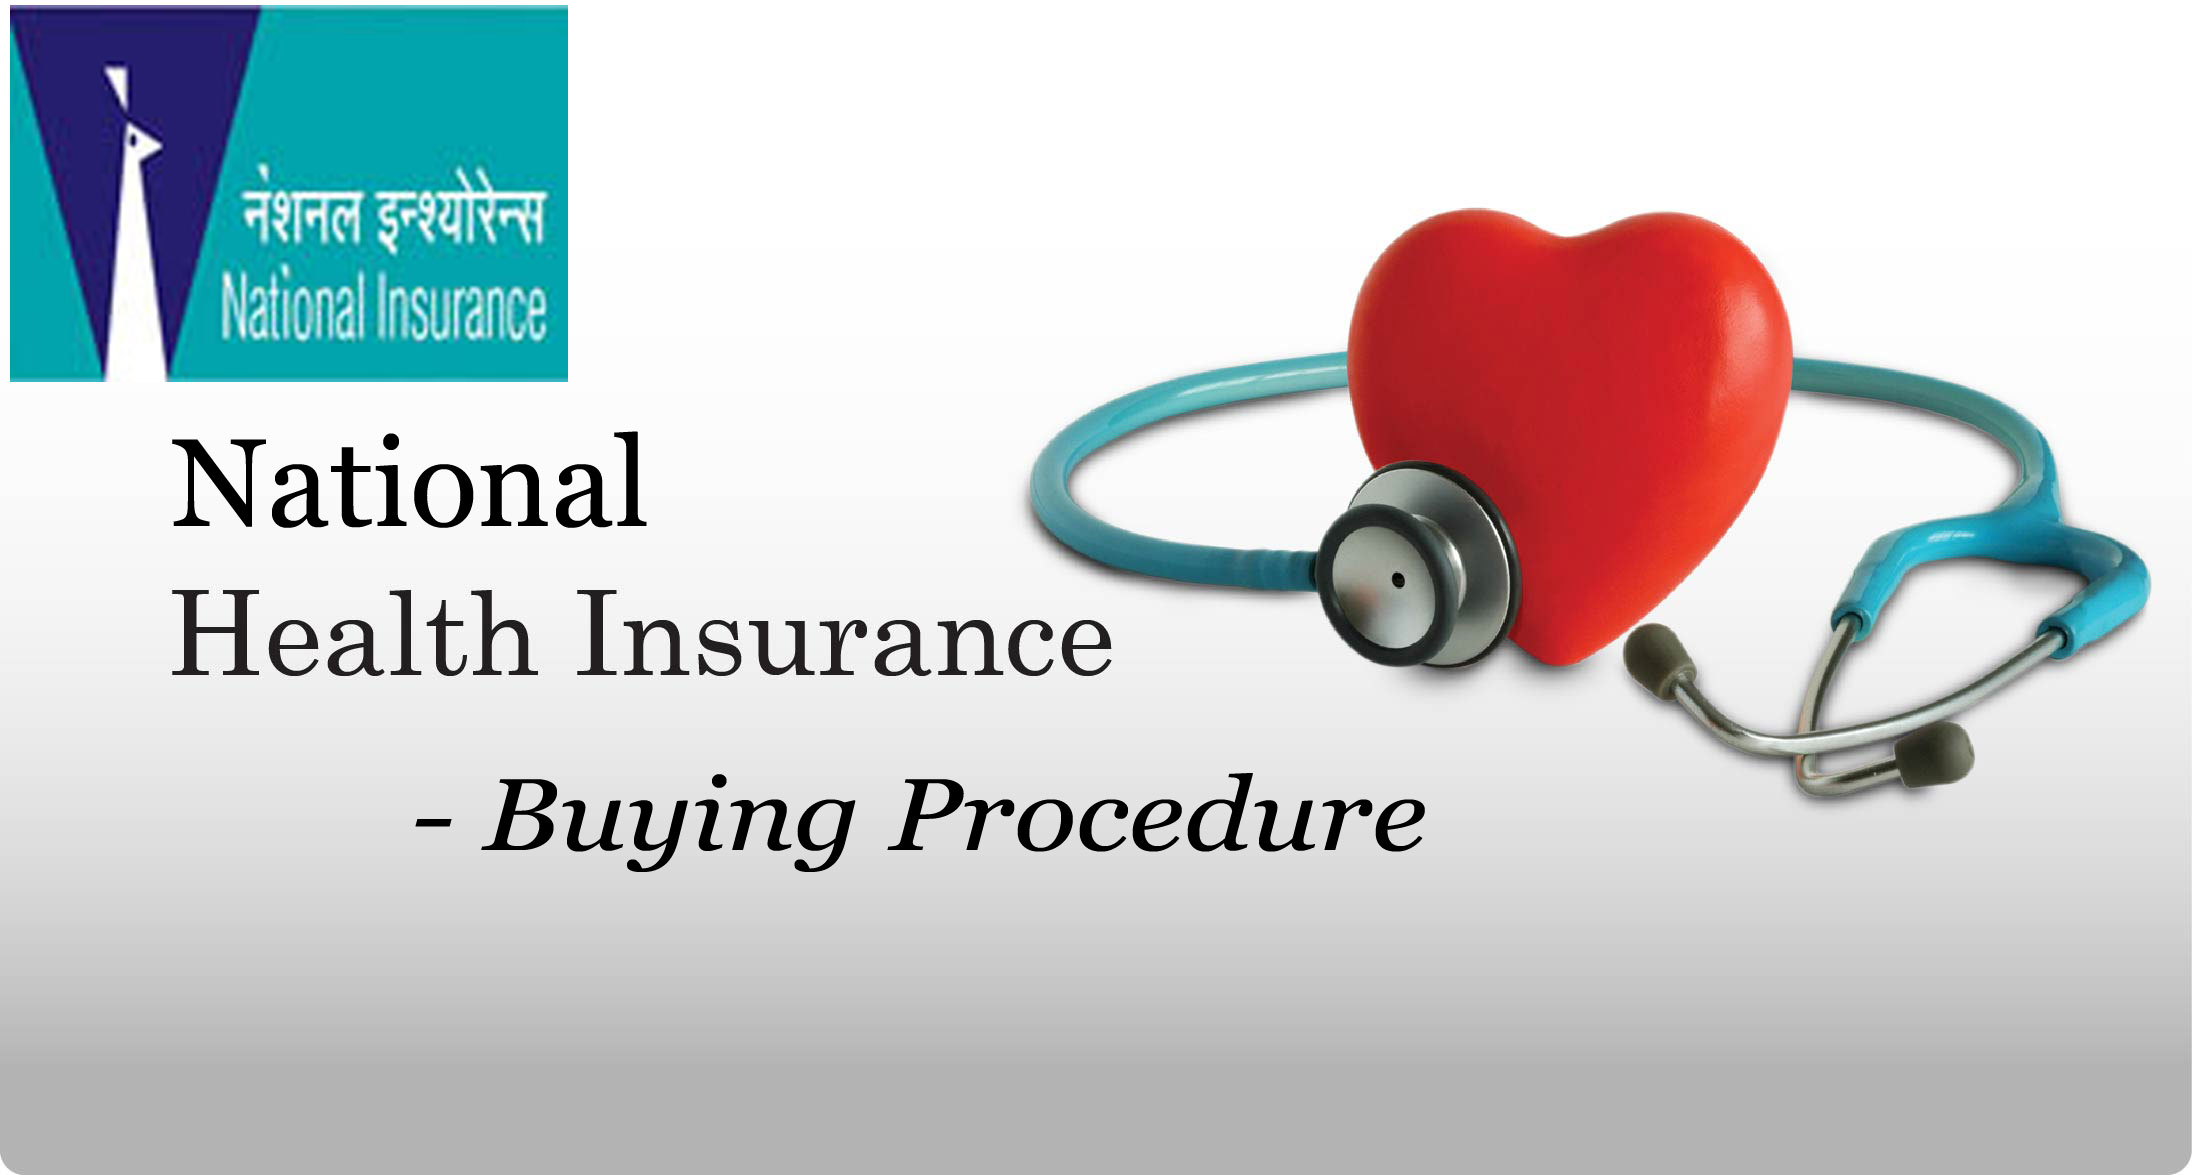 National Health Insurance Proposal Form Image